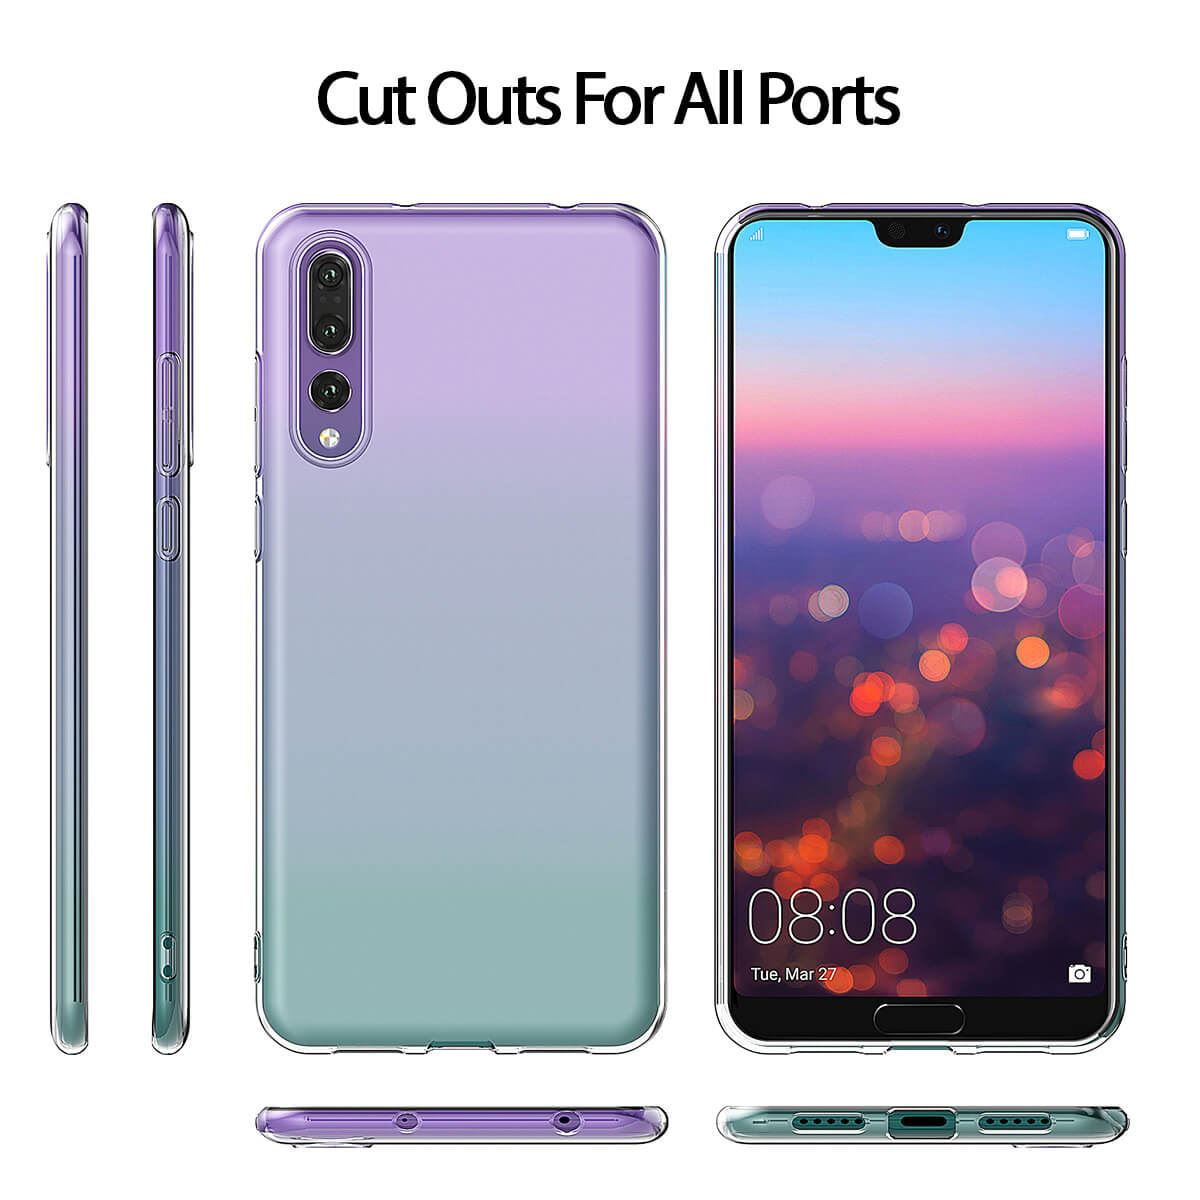 Shockproof-Silicone-Protective-Clear-Gel-Cover-Case-For-Huawei-P20-Pro-P-Smart thumbnail 87